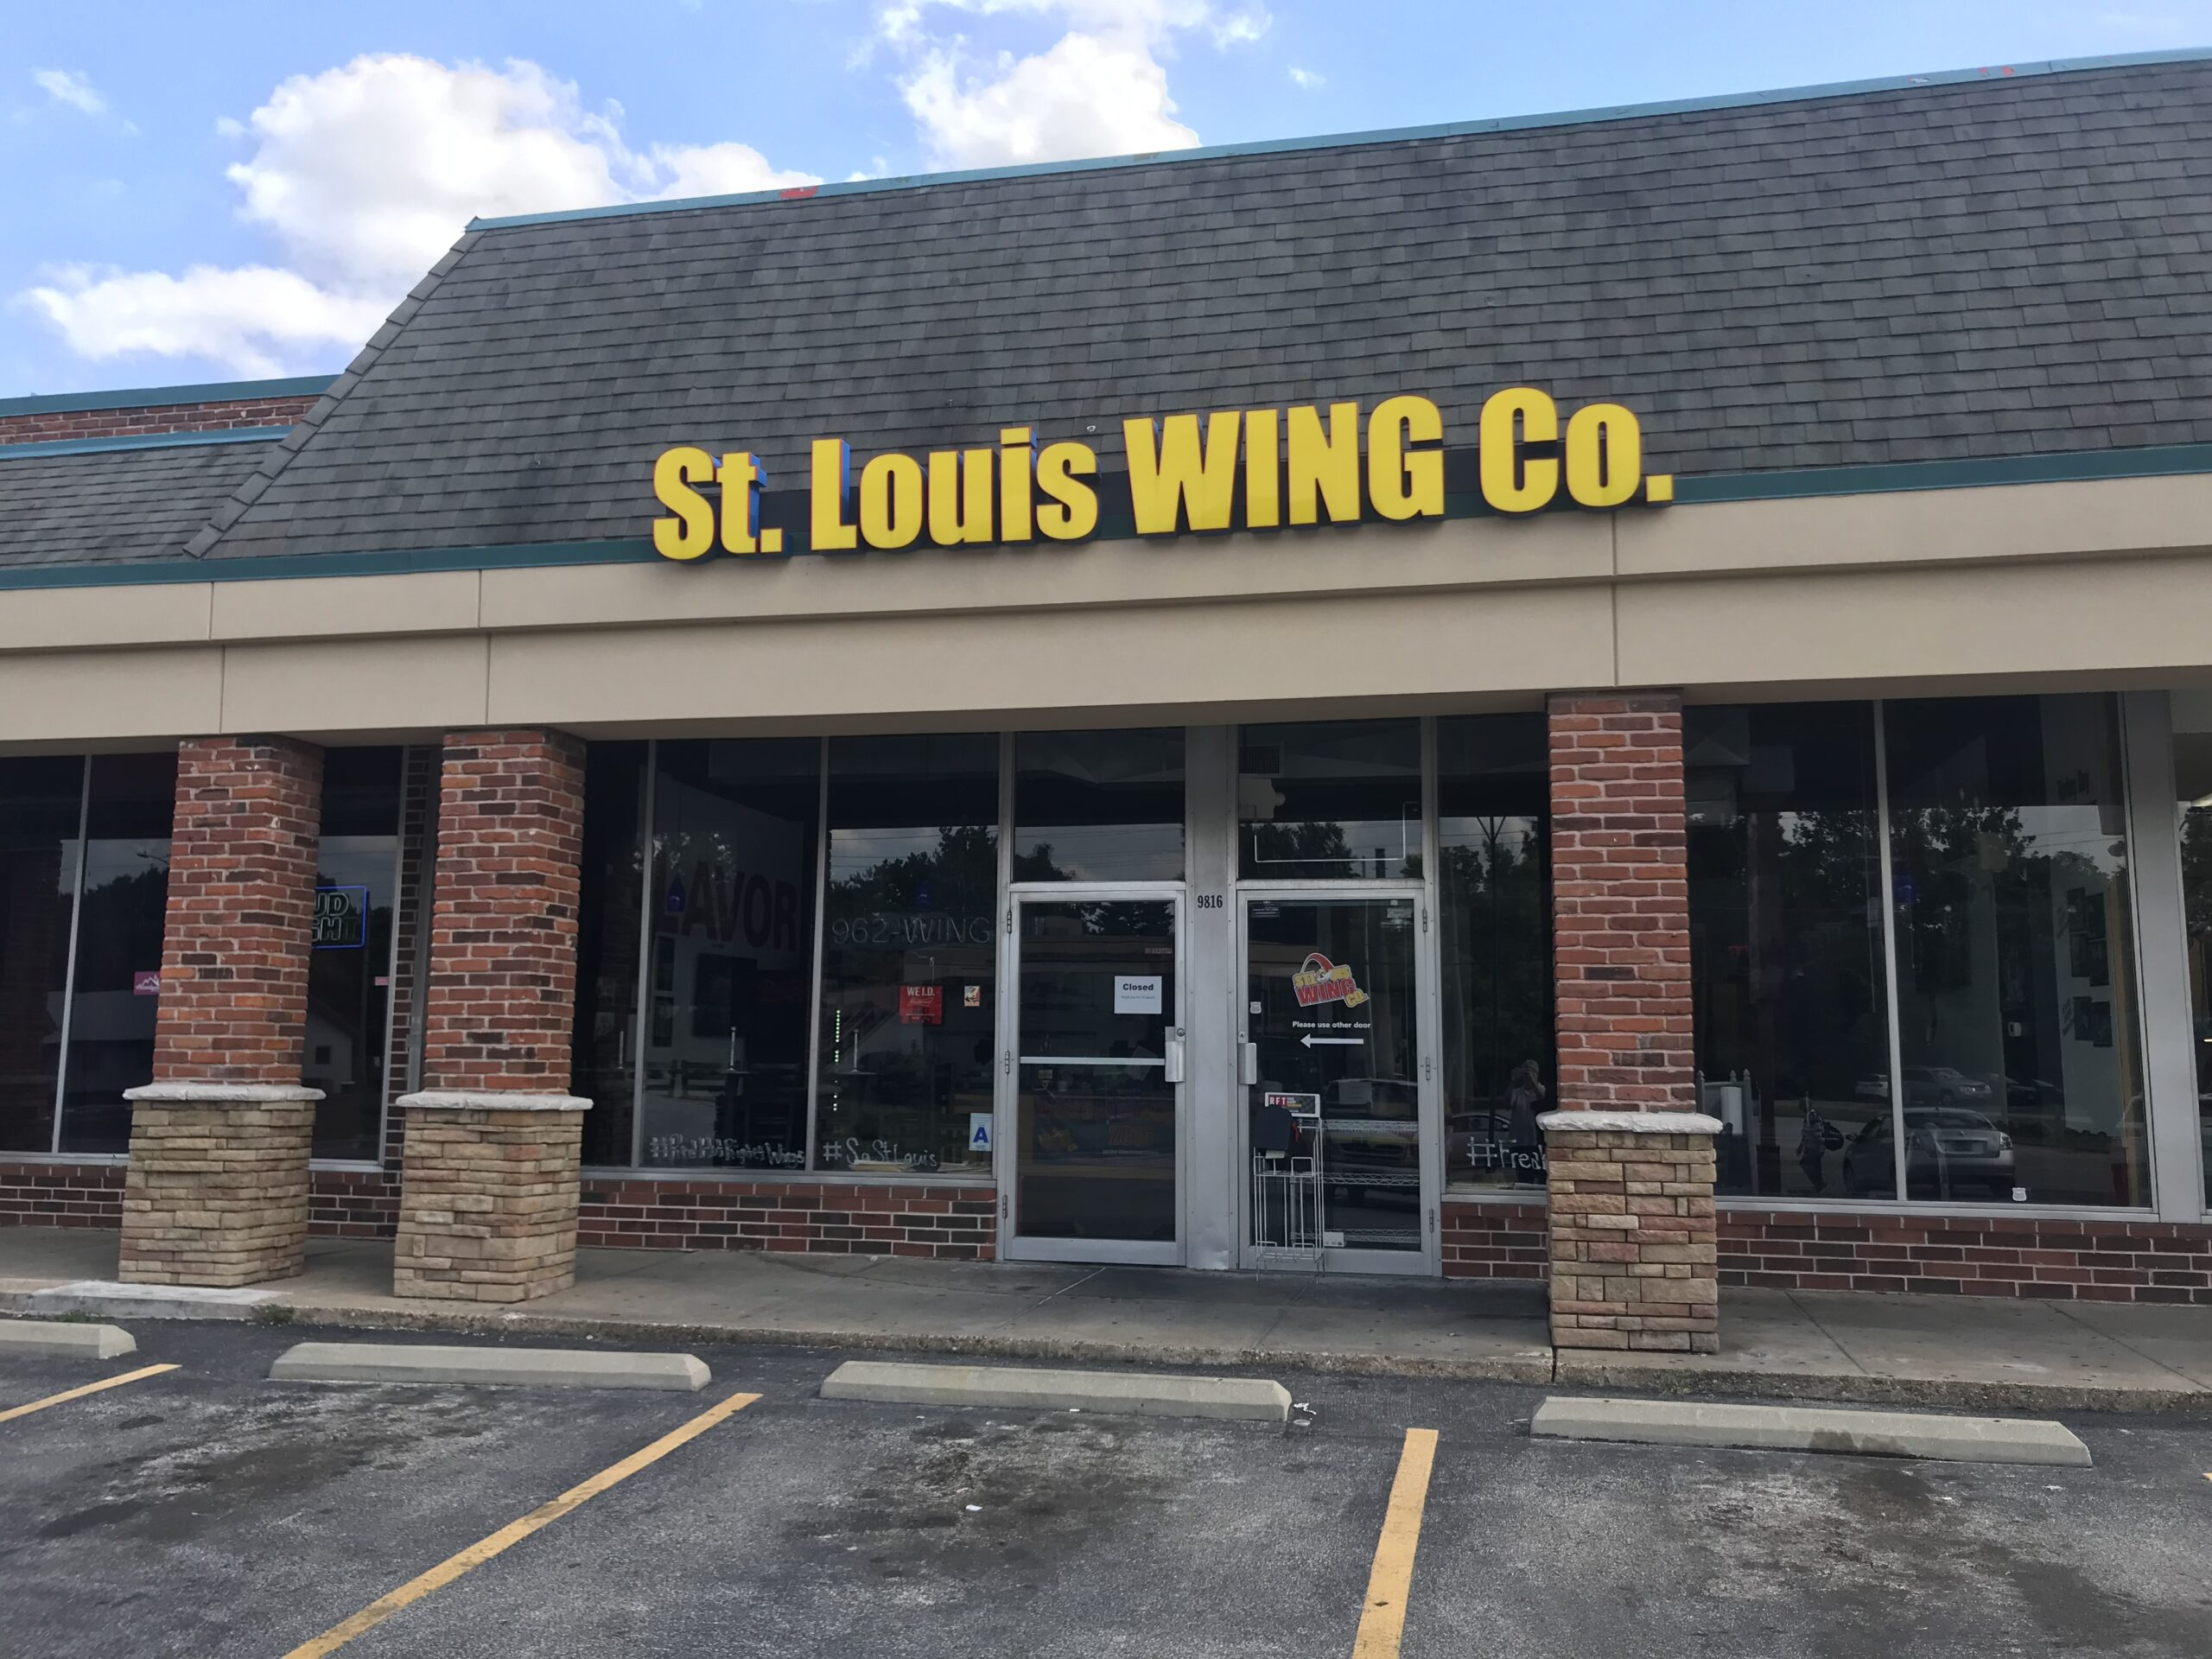 St Louis WING Co closed after 10 years